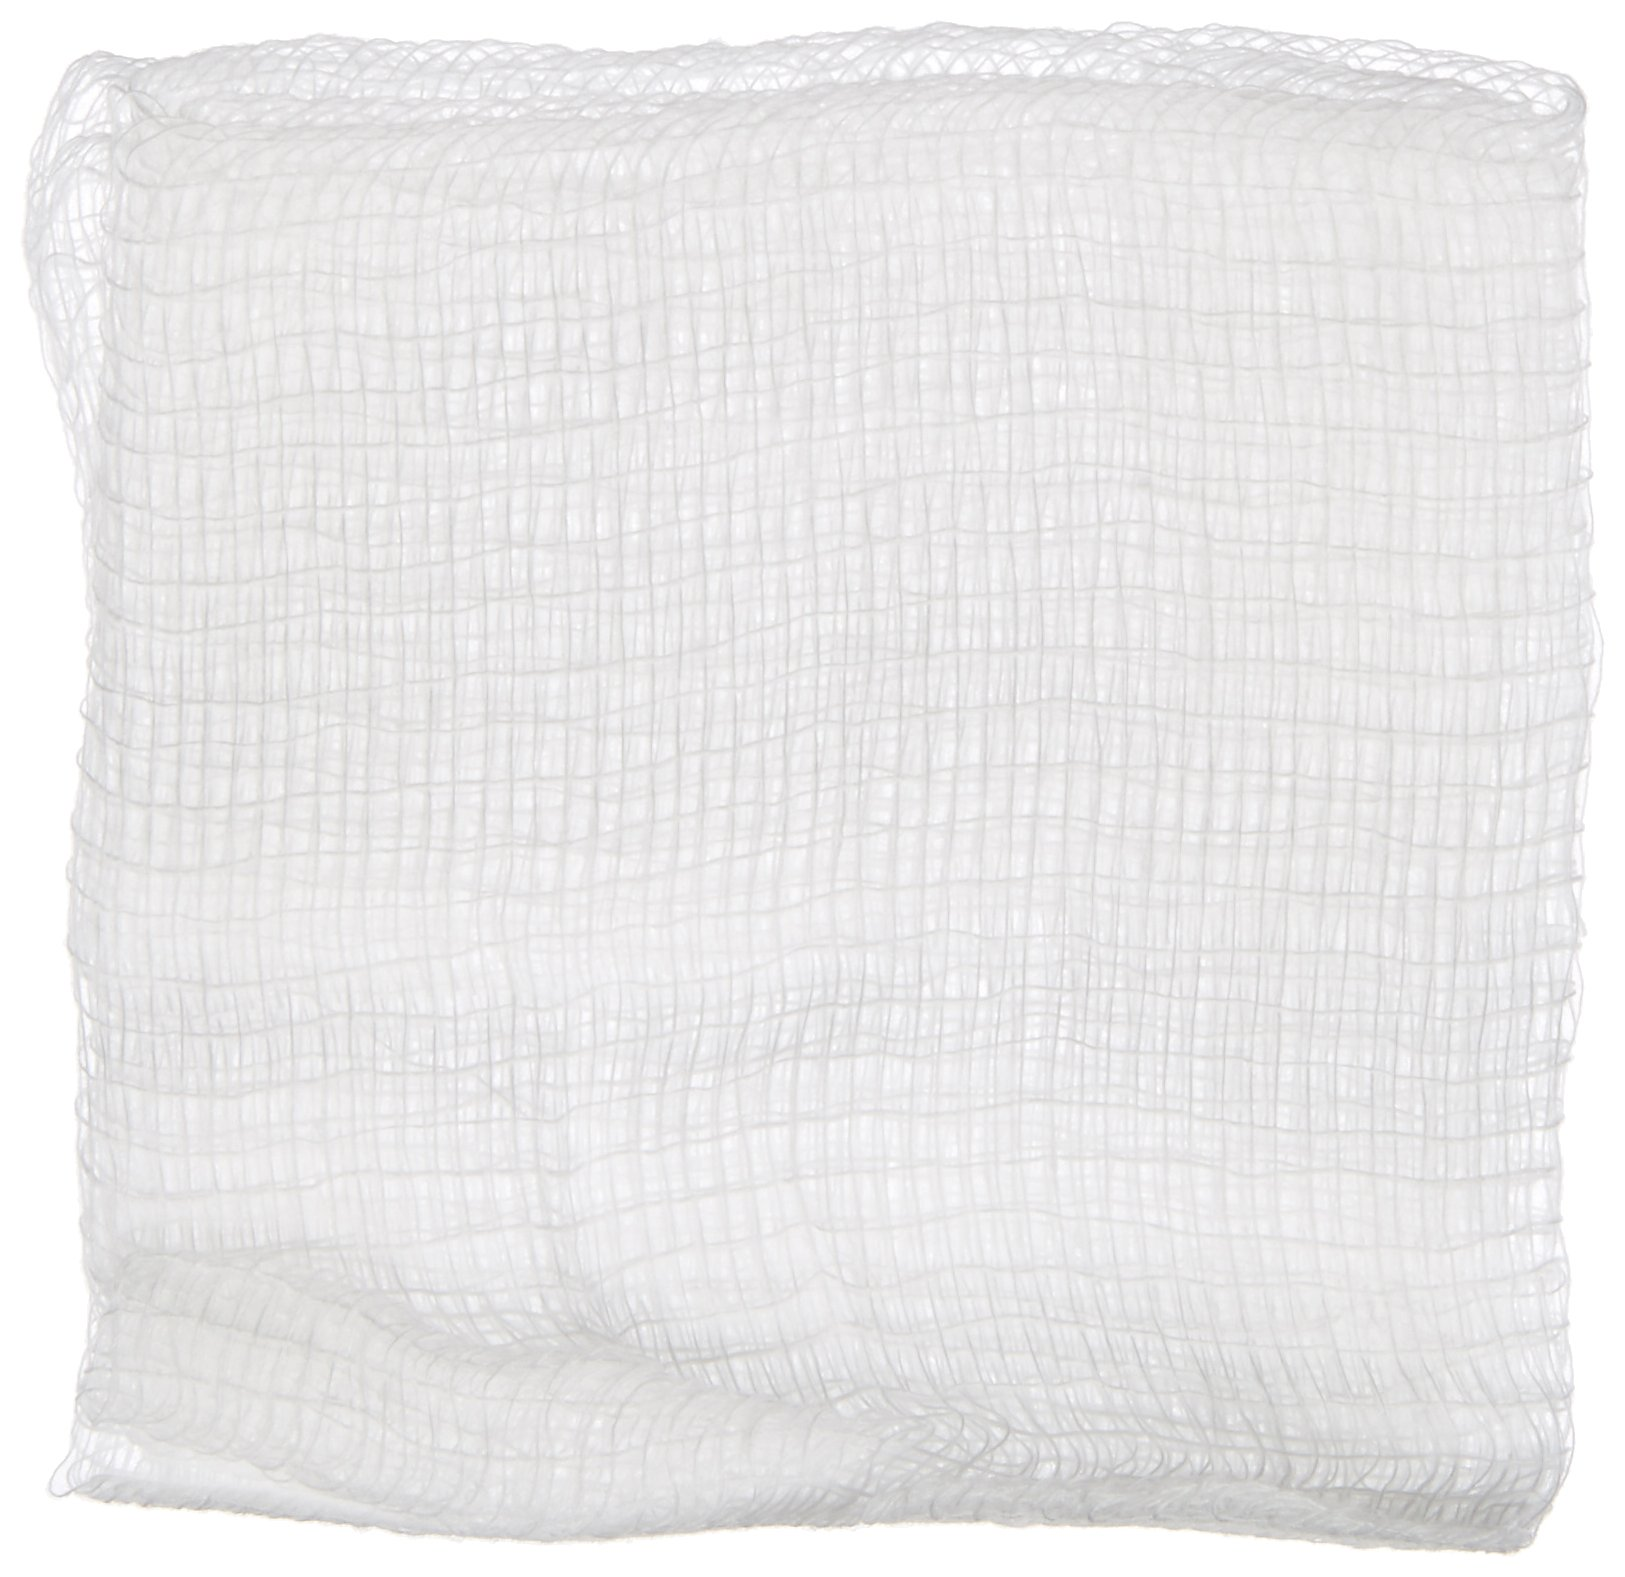 Kendall 2346 Curity Cotton Gauze Sponge, Non-Sterile, 3'' Length x 3'' Width, 12 Ply (20 Bags of 200)